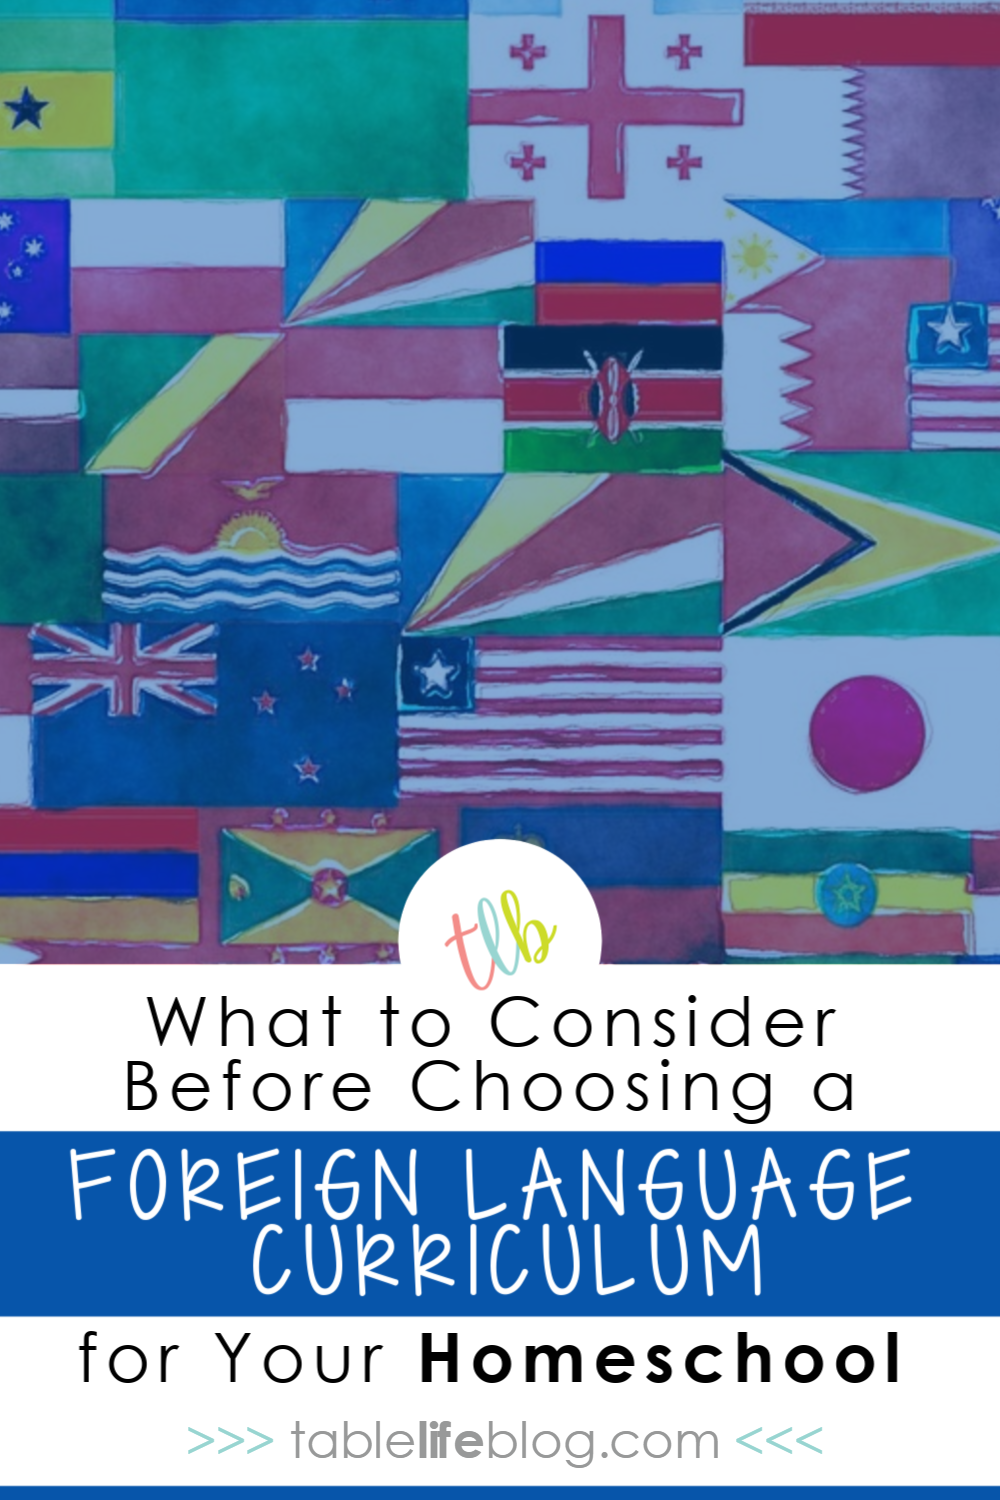 3 Things To Remember Before Choosing Foreign Language Curriculum for Your Homeschool